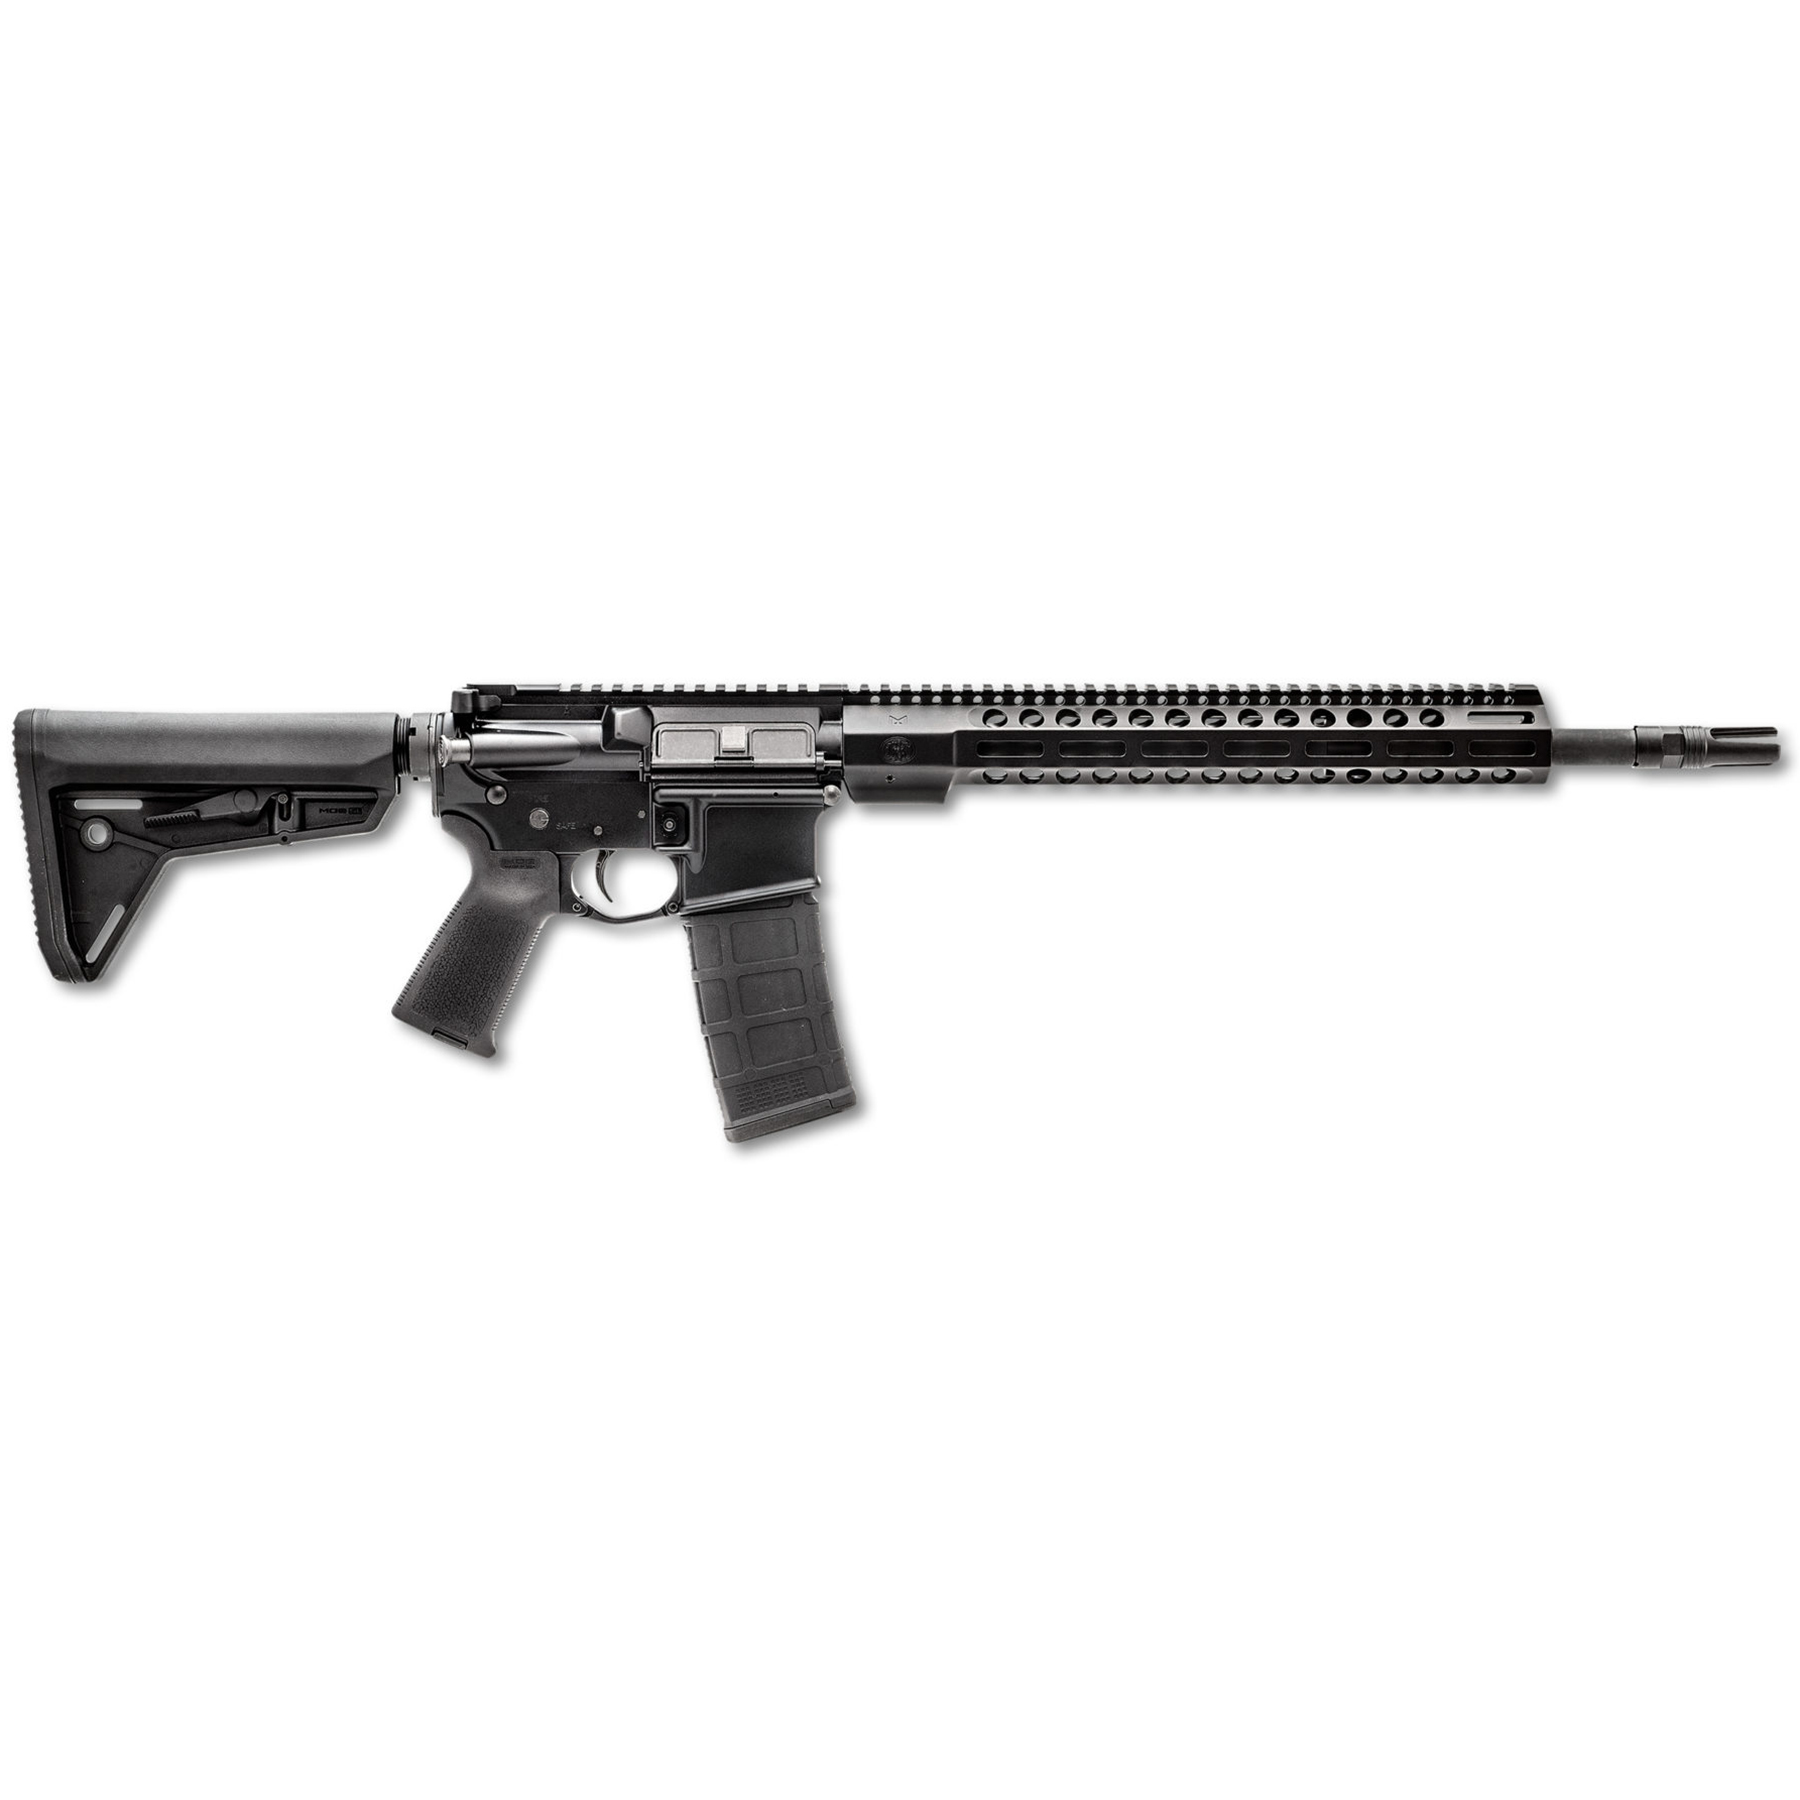 FN 15 Tactical II Centerfire Rifle